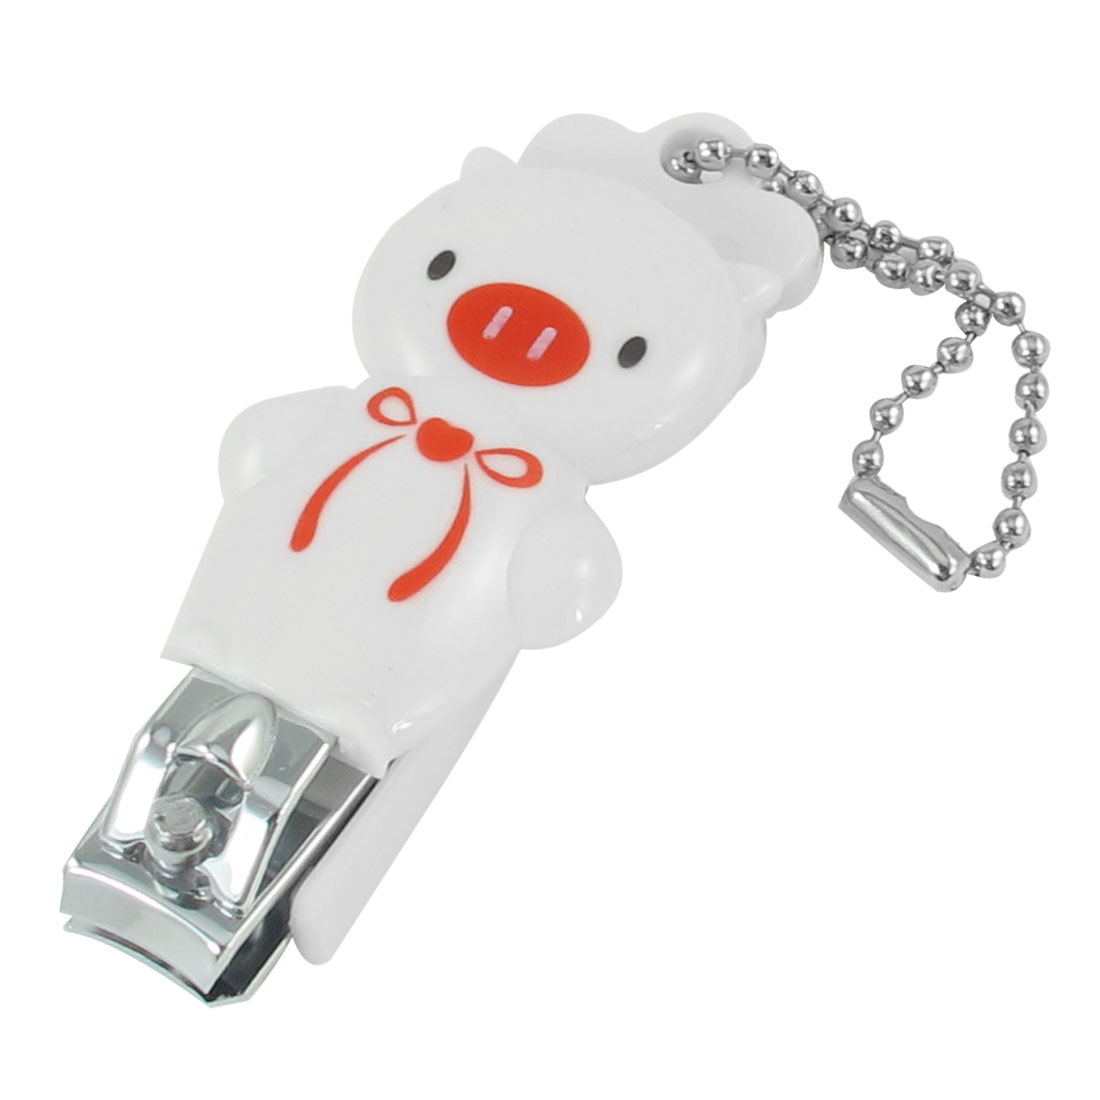 Mini Bowknot Detail Pig Design White Plastic Metal Nail Toe Clipper w Key Ring